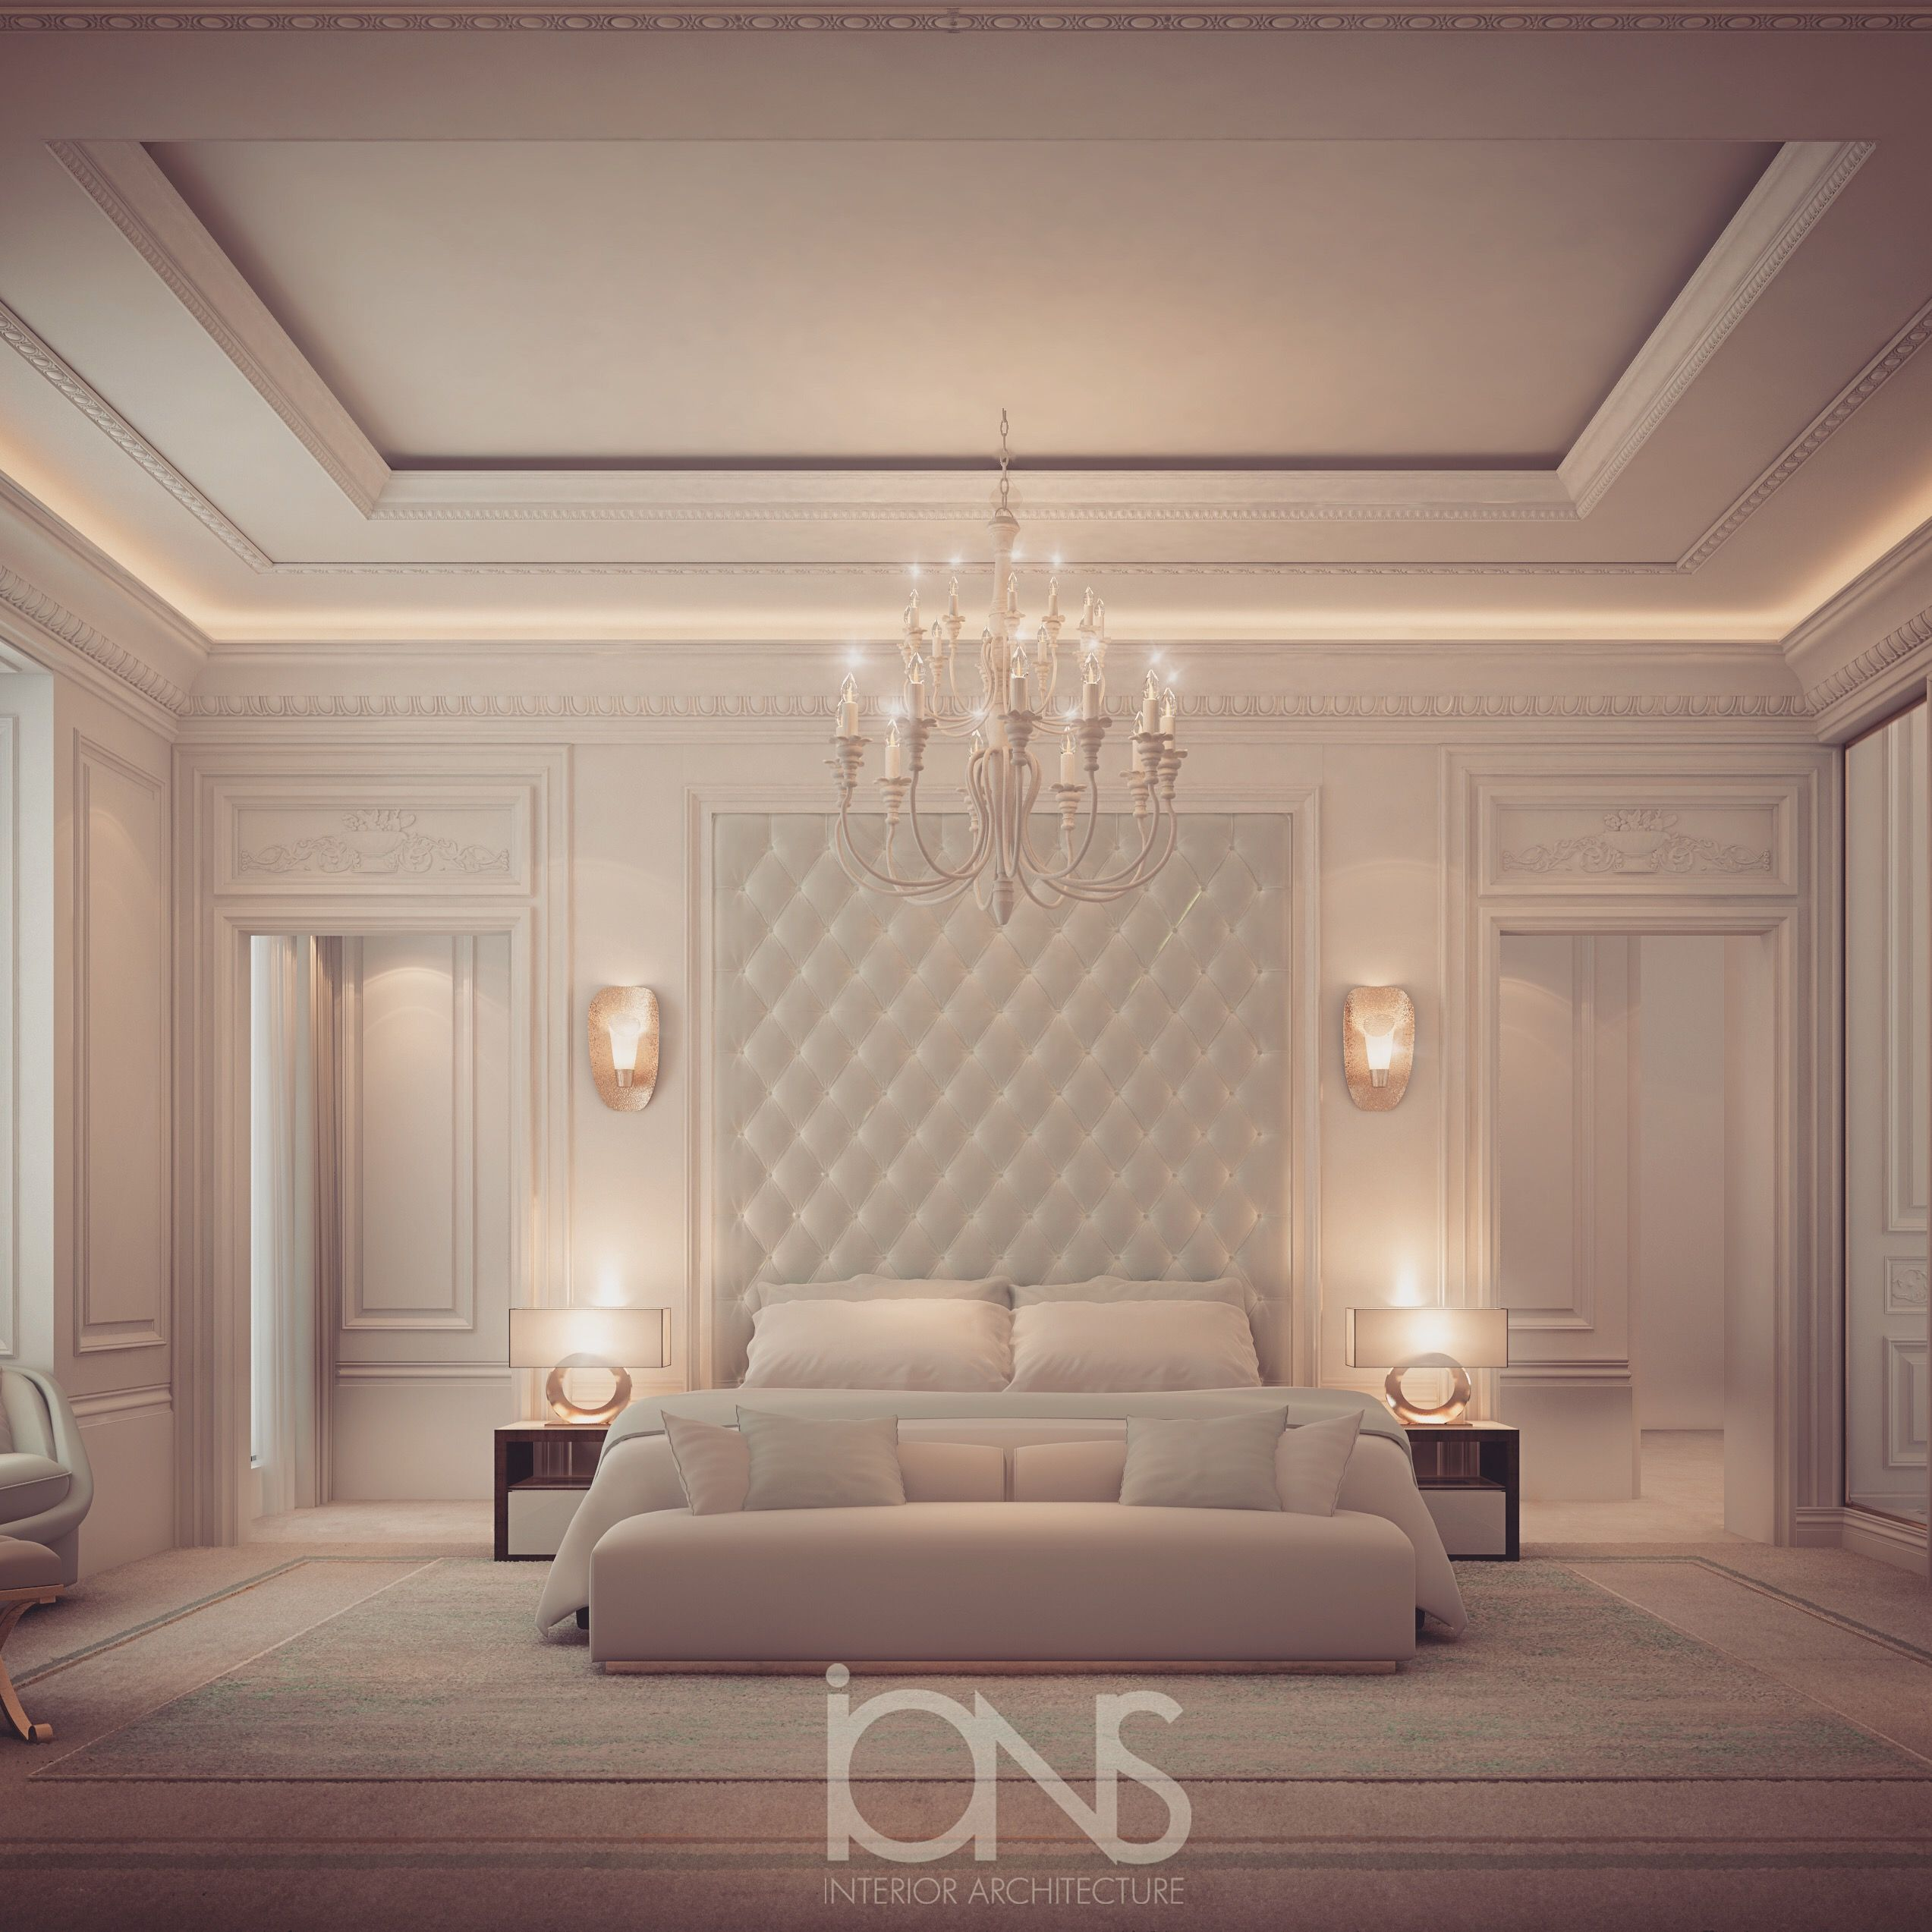 Modern Beautiful Bedrooms Interior Decoration Designs: Bedroom Interior By IONS DESIGN